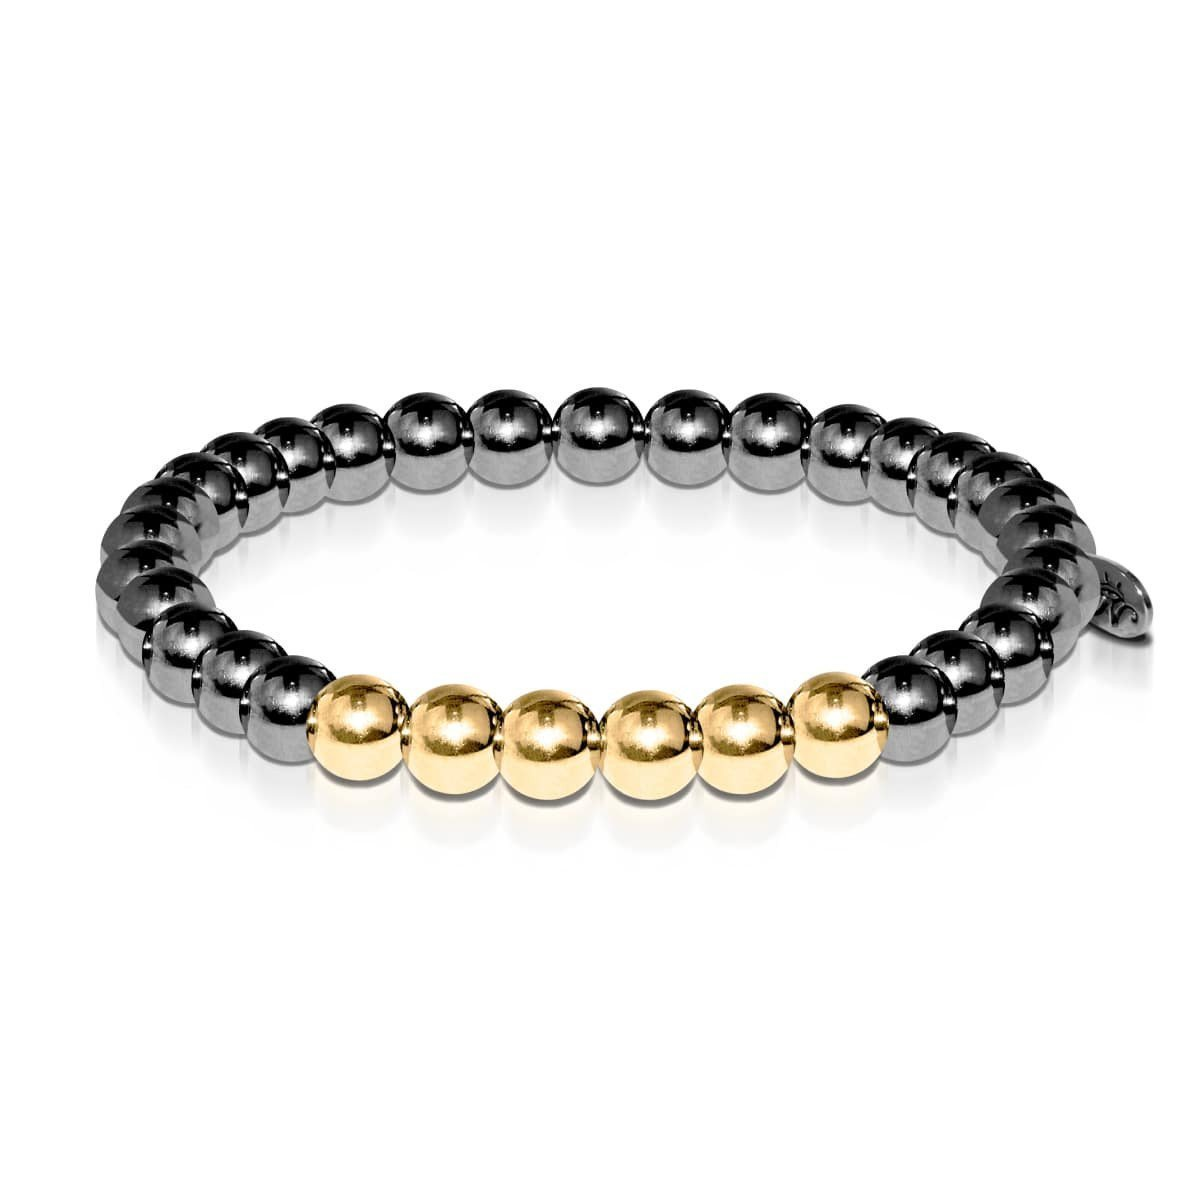 Men's | Gunmetal | 18k Gold | Bead Bracelet